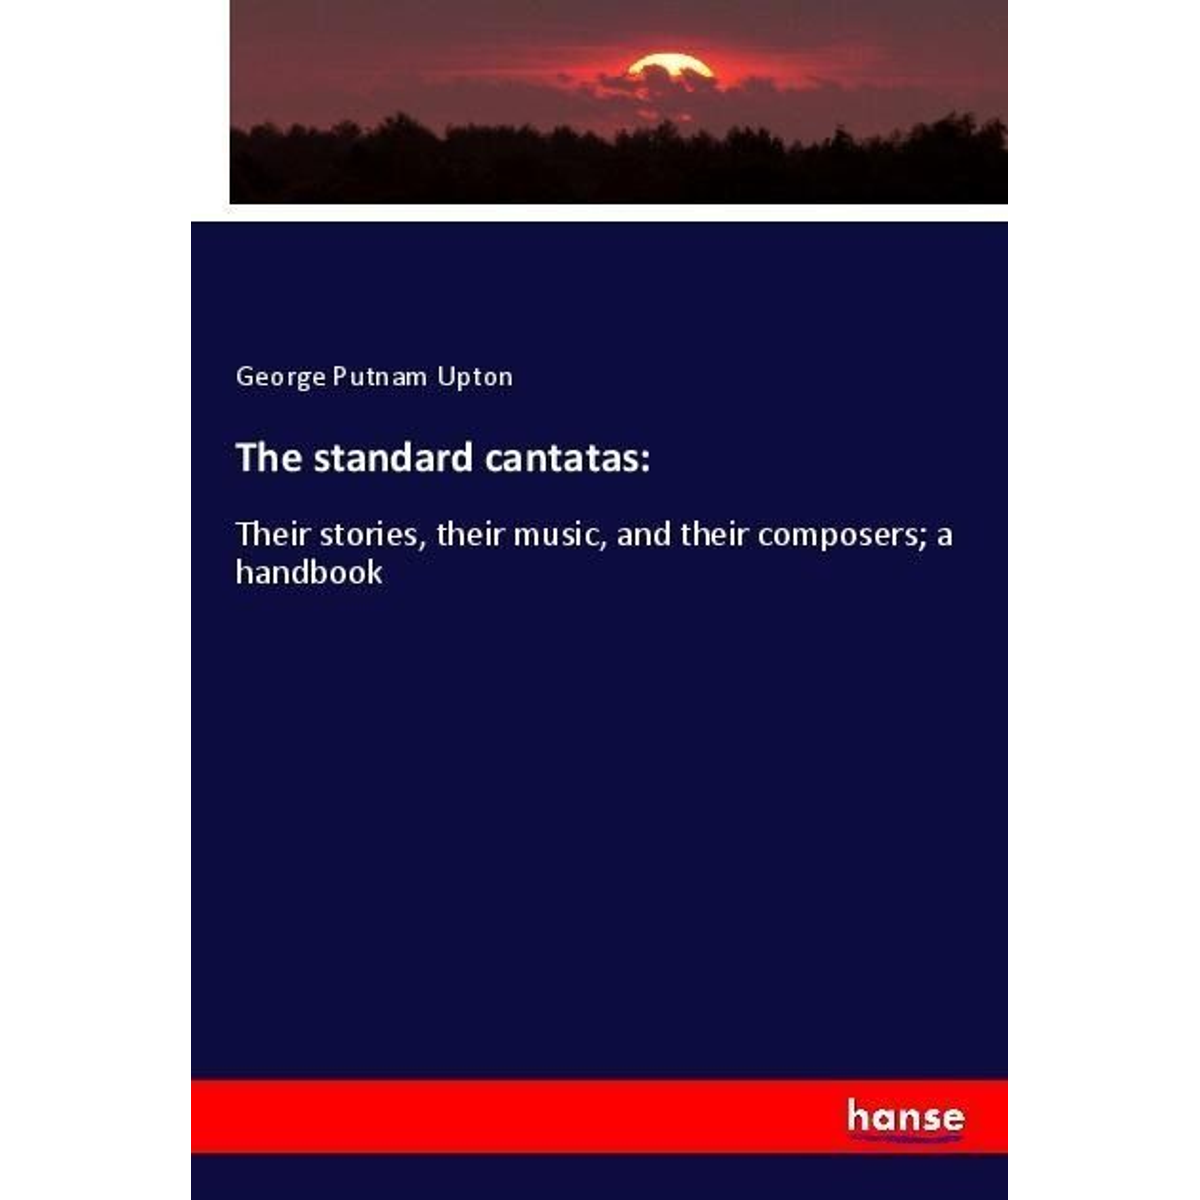 The standard cantatas: